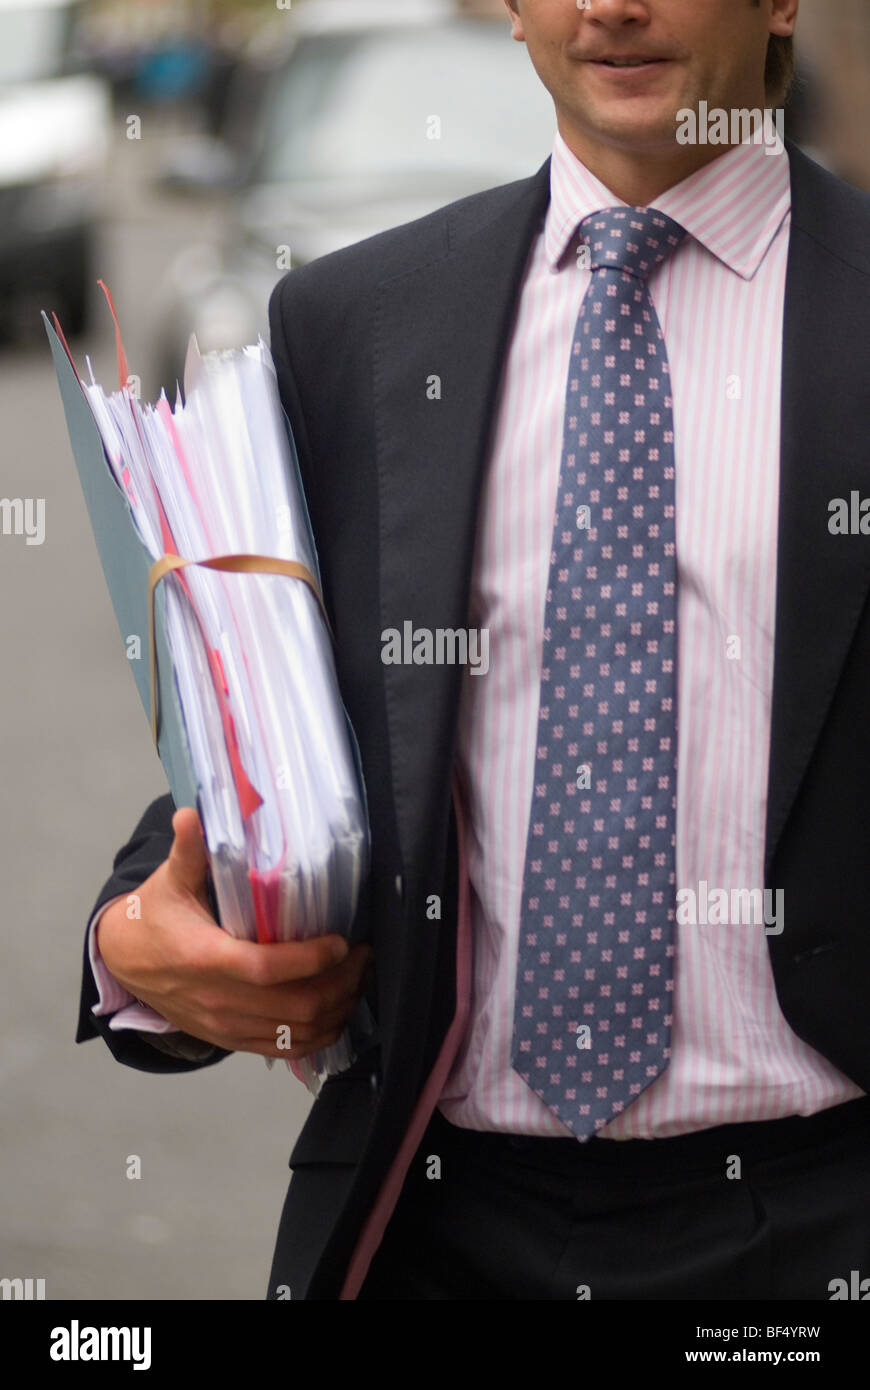 Paperwork files London city office worker. UK HOMER SYKES - Stock Image